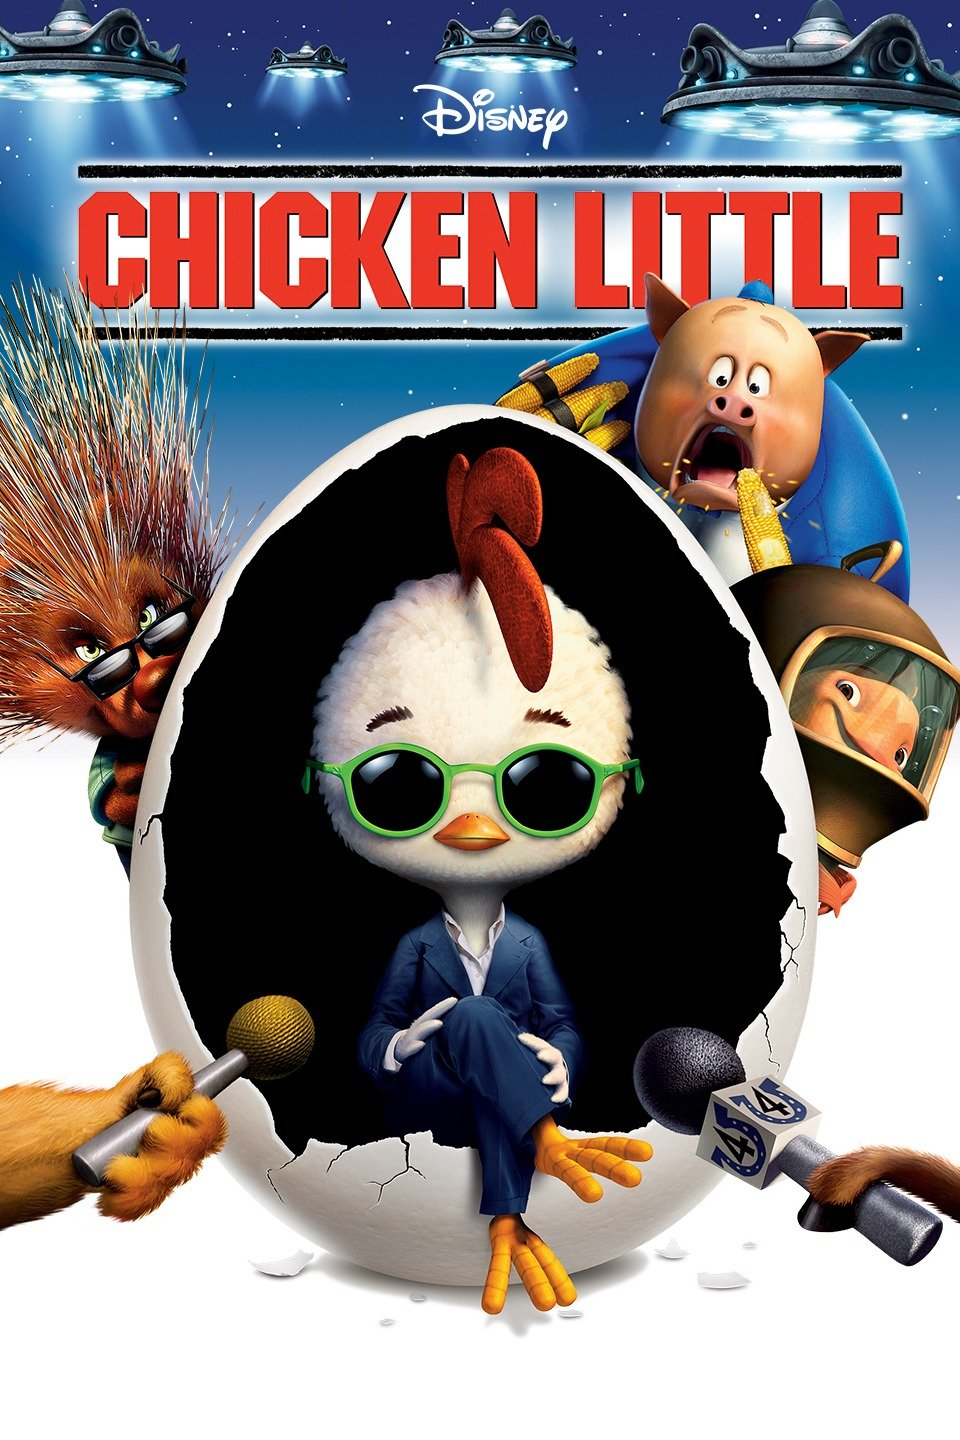 Chickenlittle.jpeg